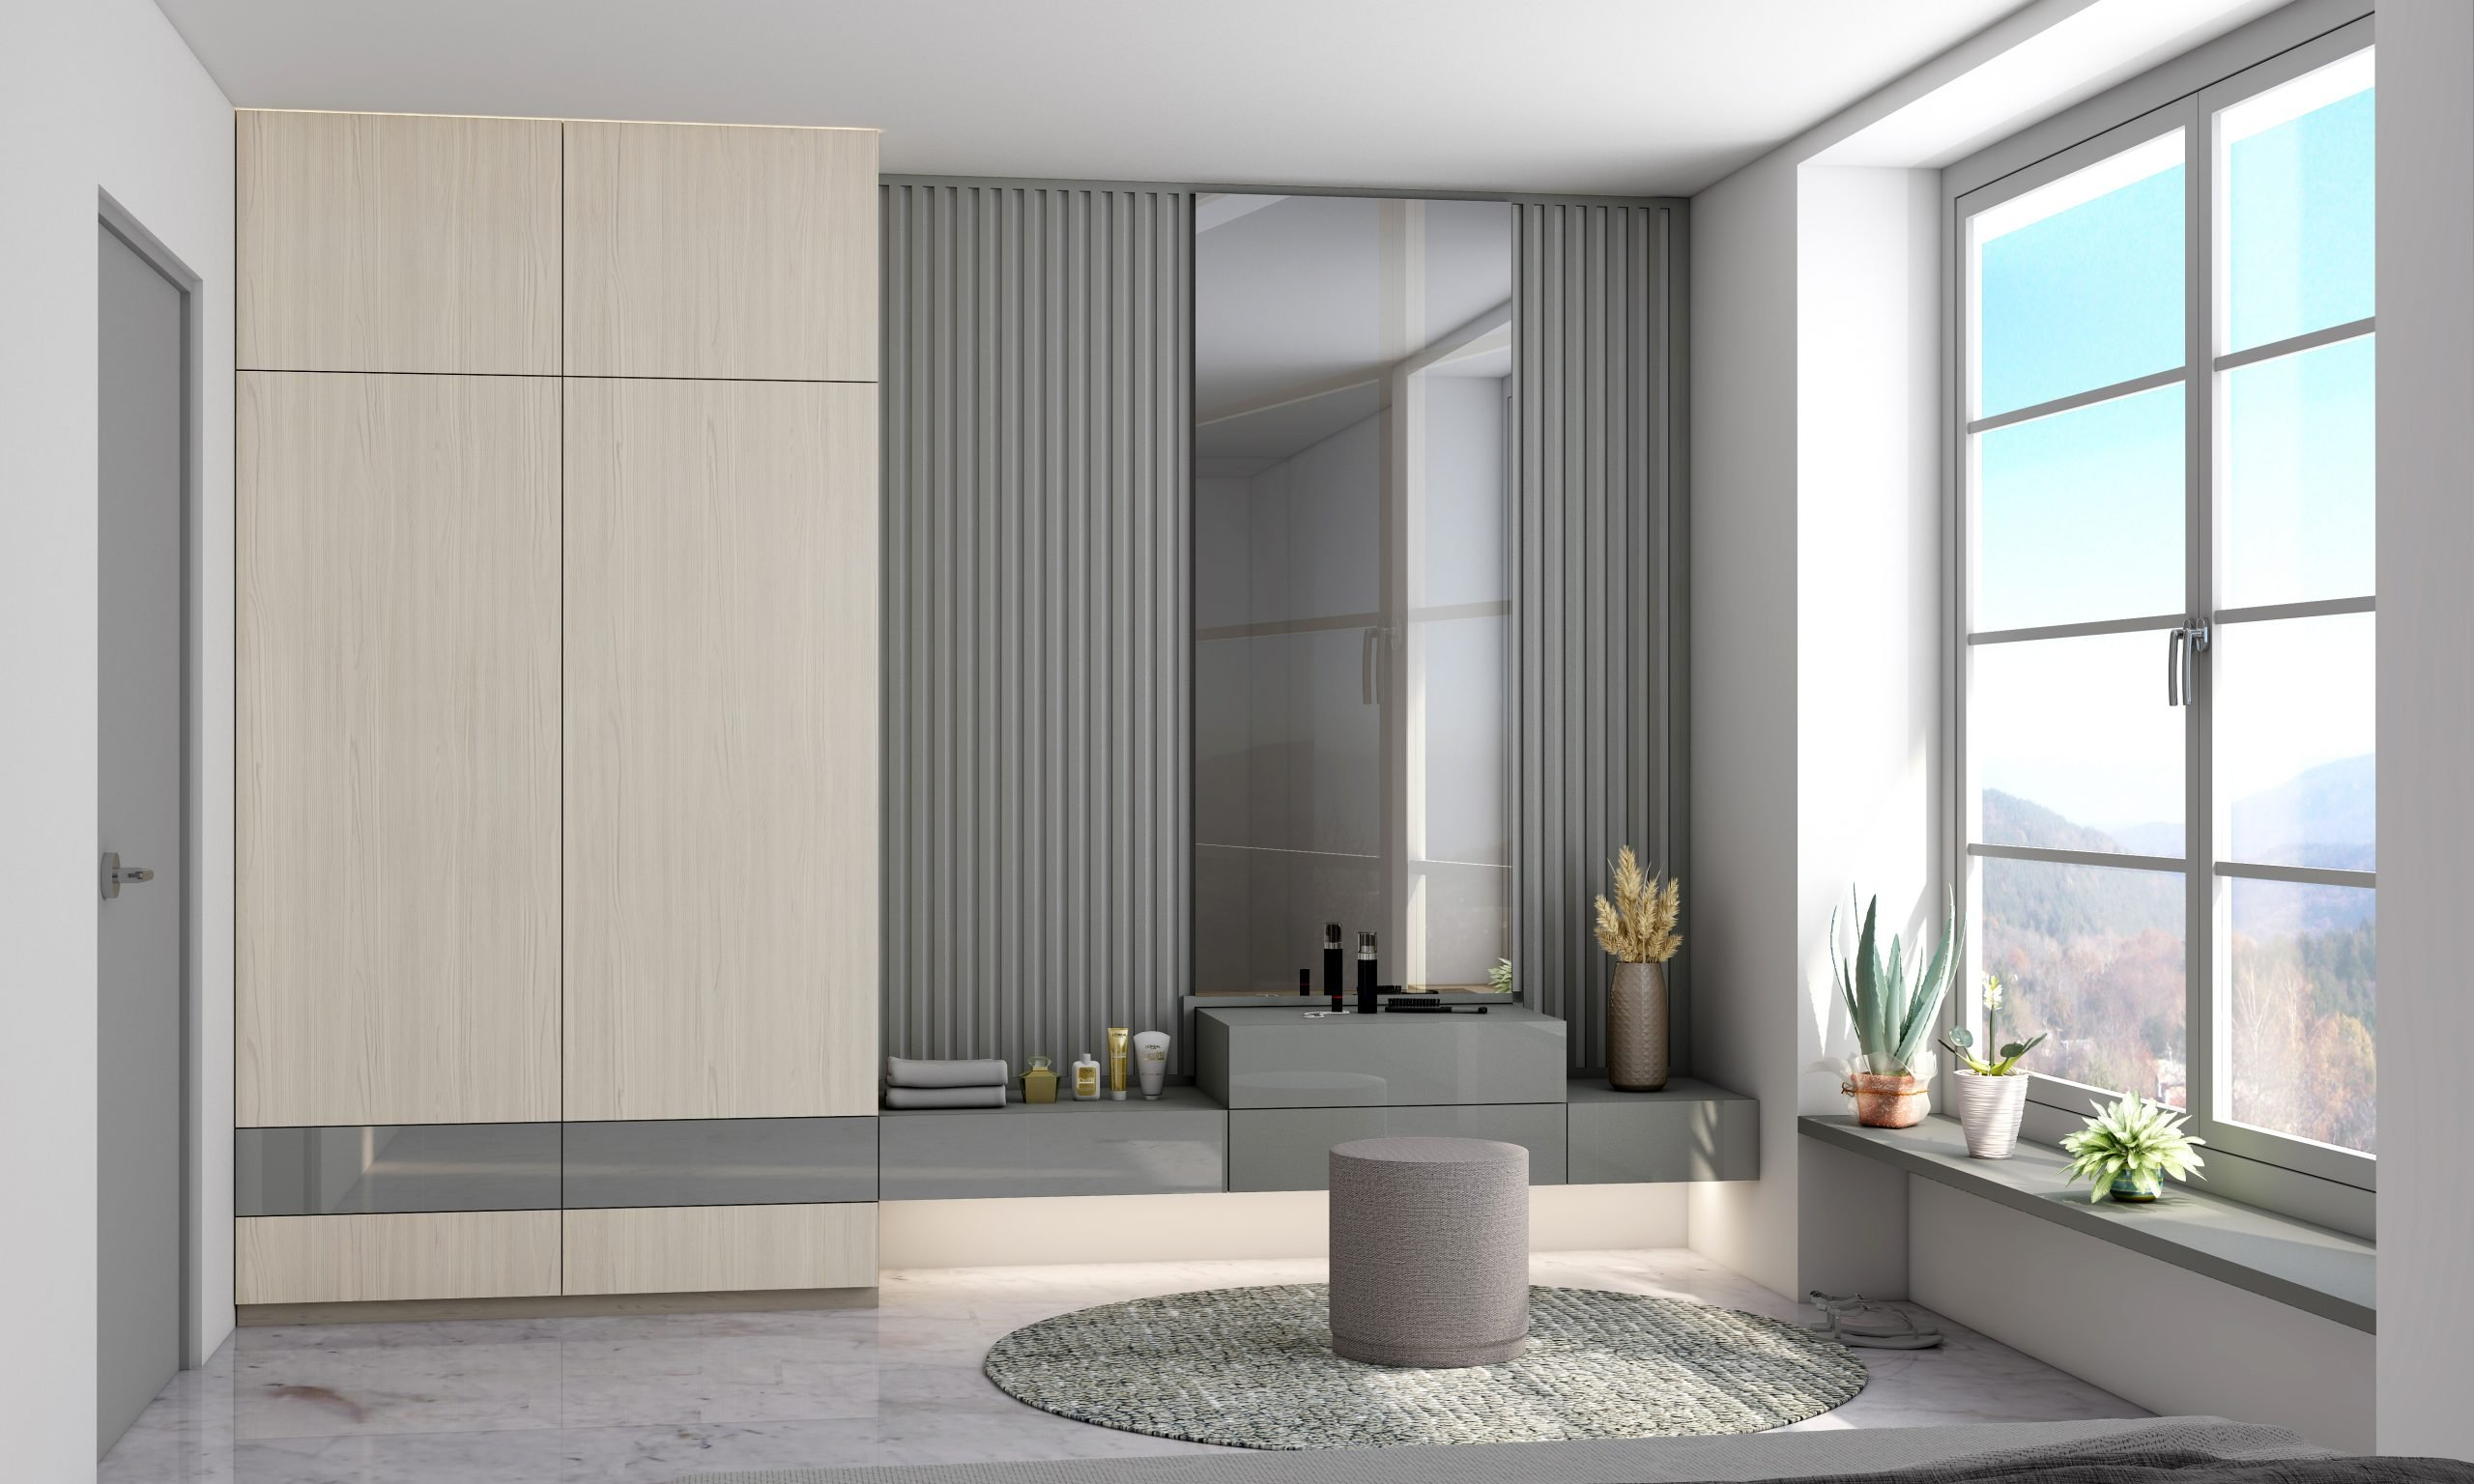 Hinged wardrobe with dressing table and extra drawer storage in Esperia and stone grey finish